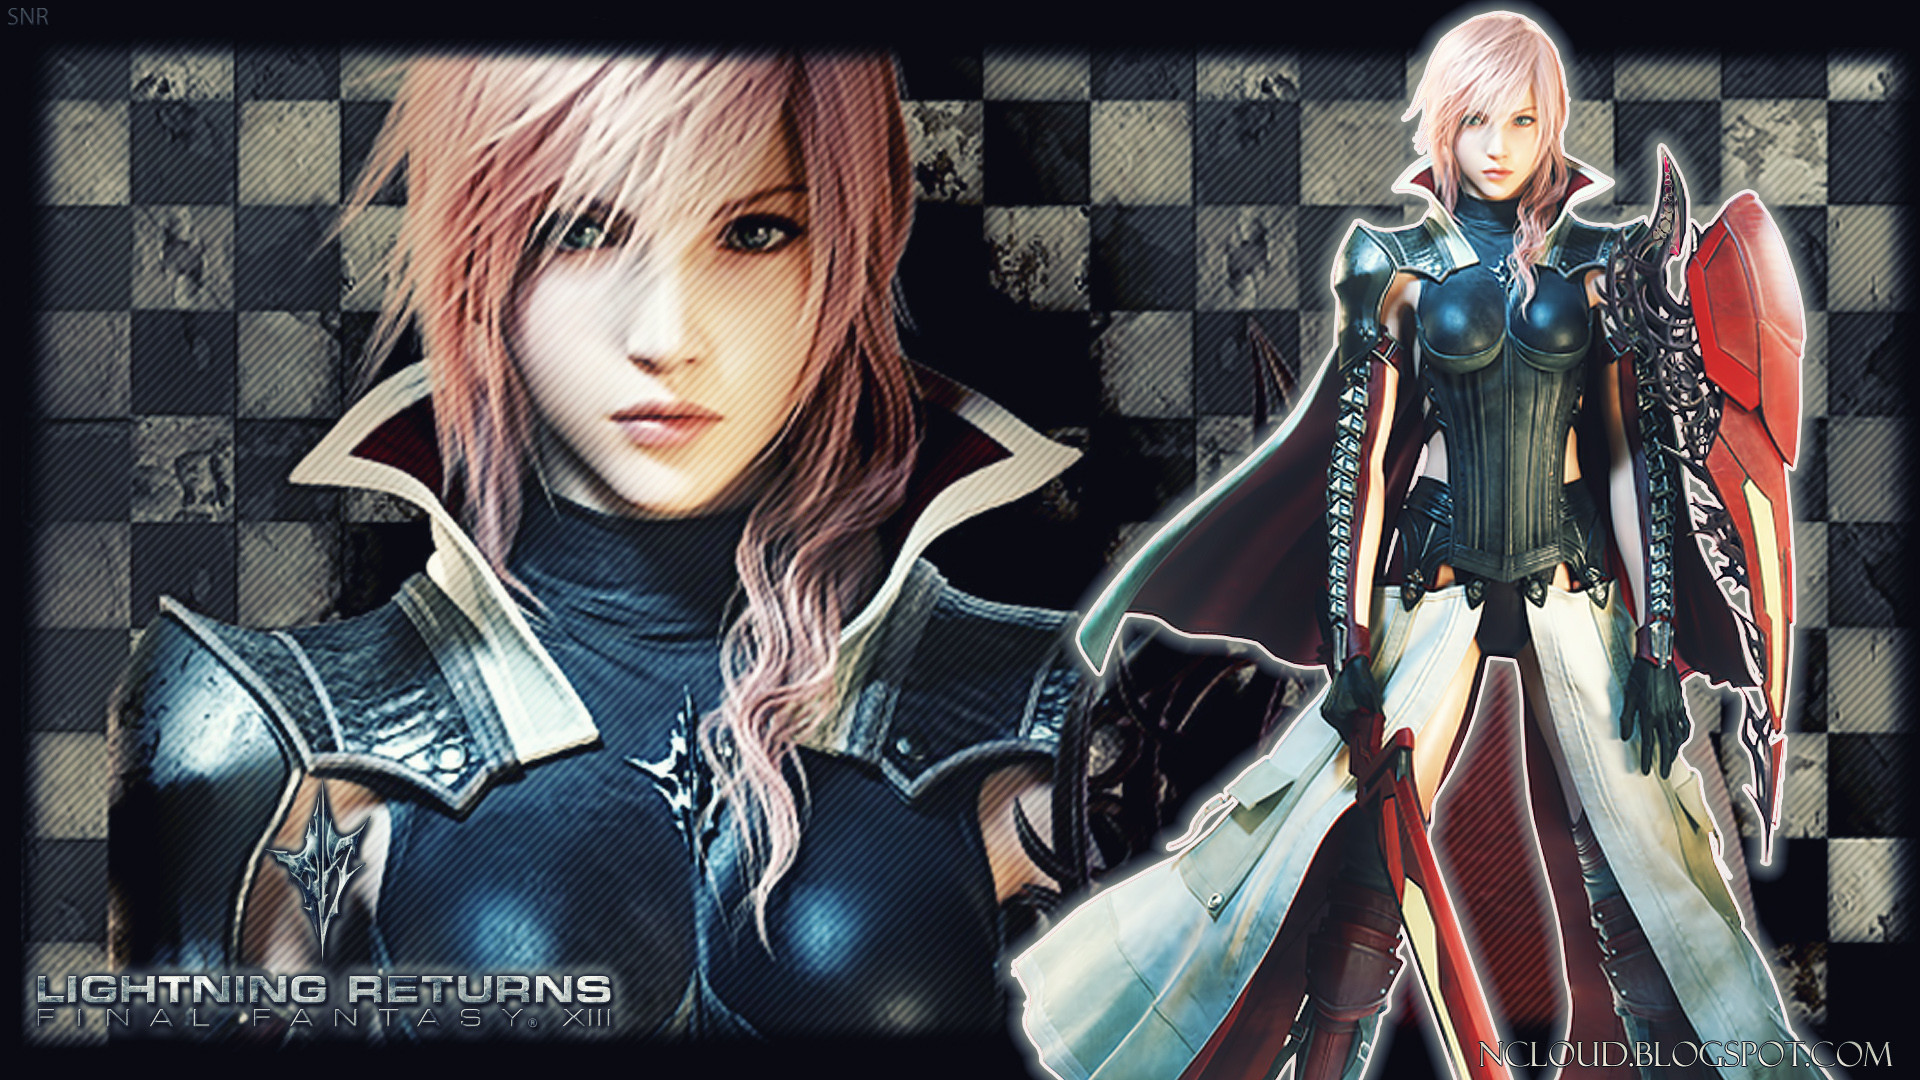 lightning returns wallpaper hd (84+ images)